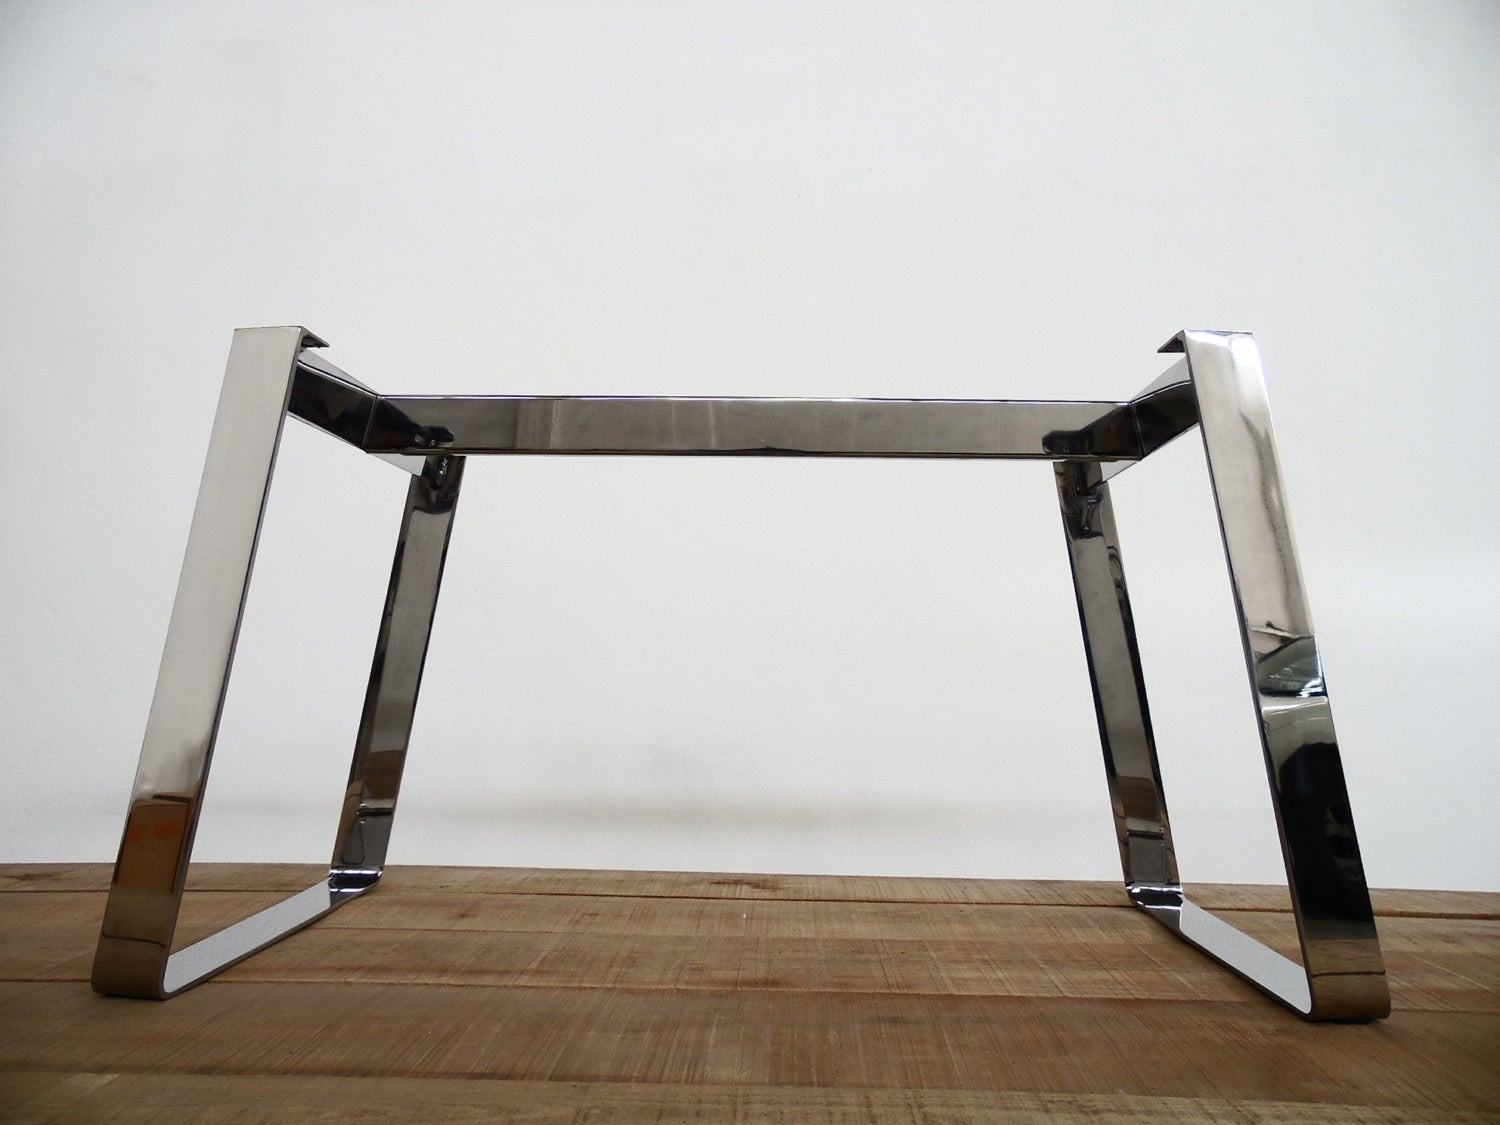 Balasagun Flat Stainless Steel Table Legs